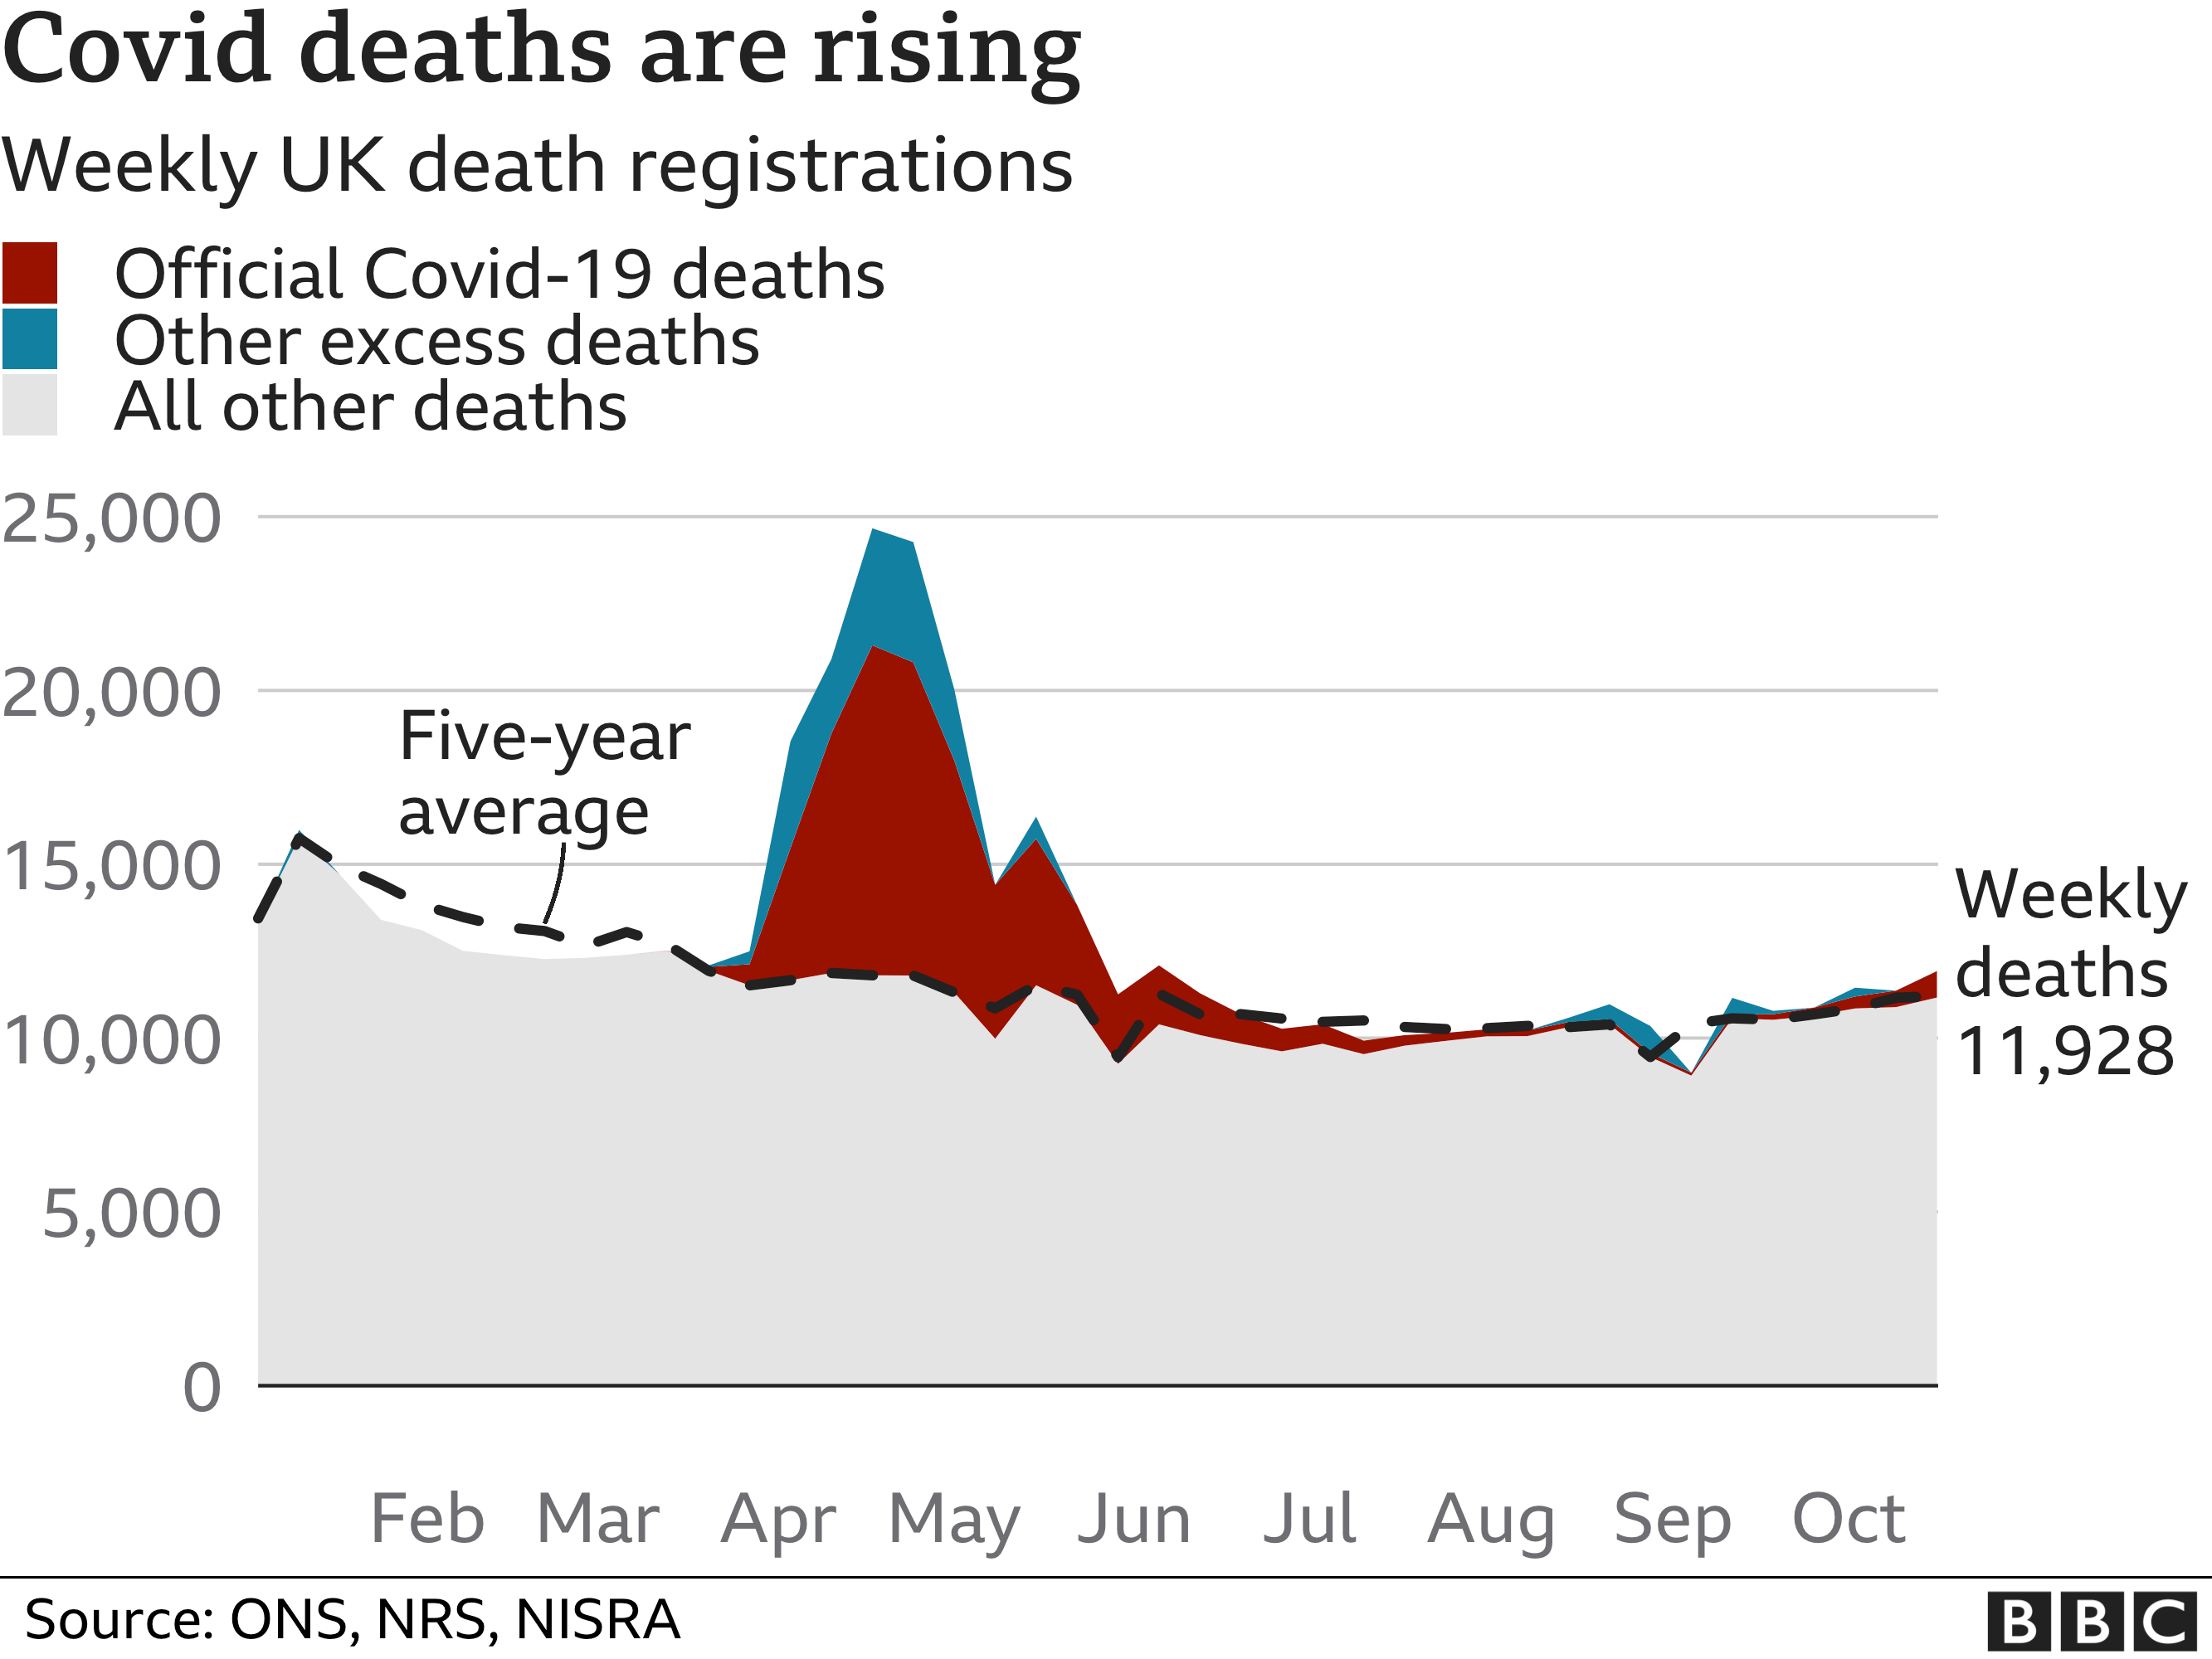 Chart shows excess deaths above 5 year average